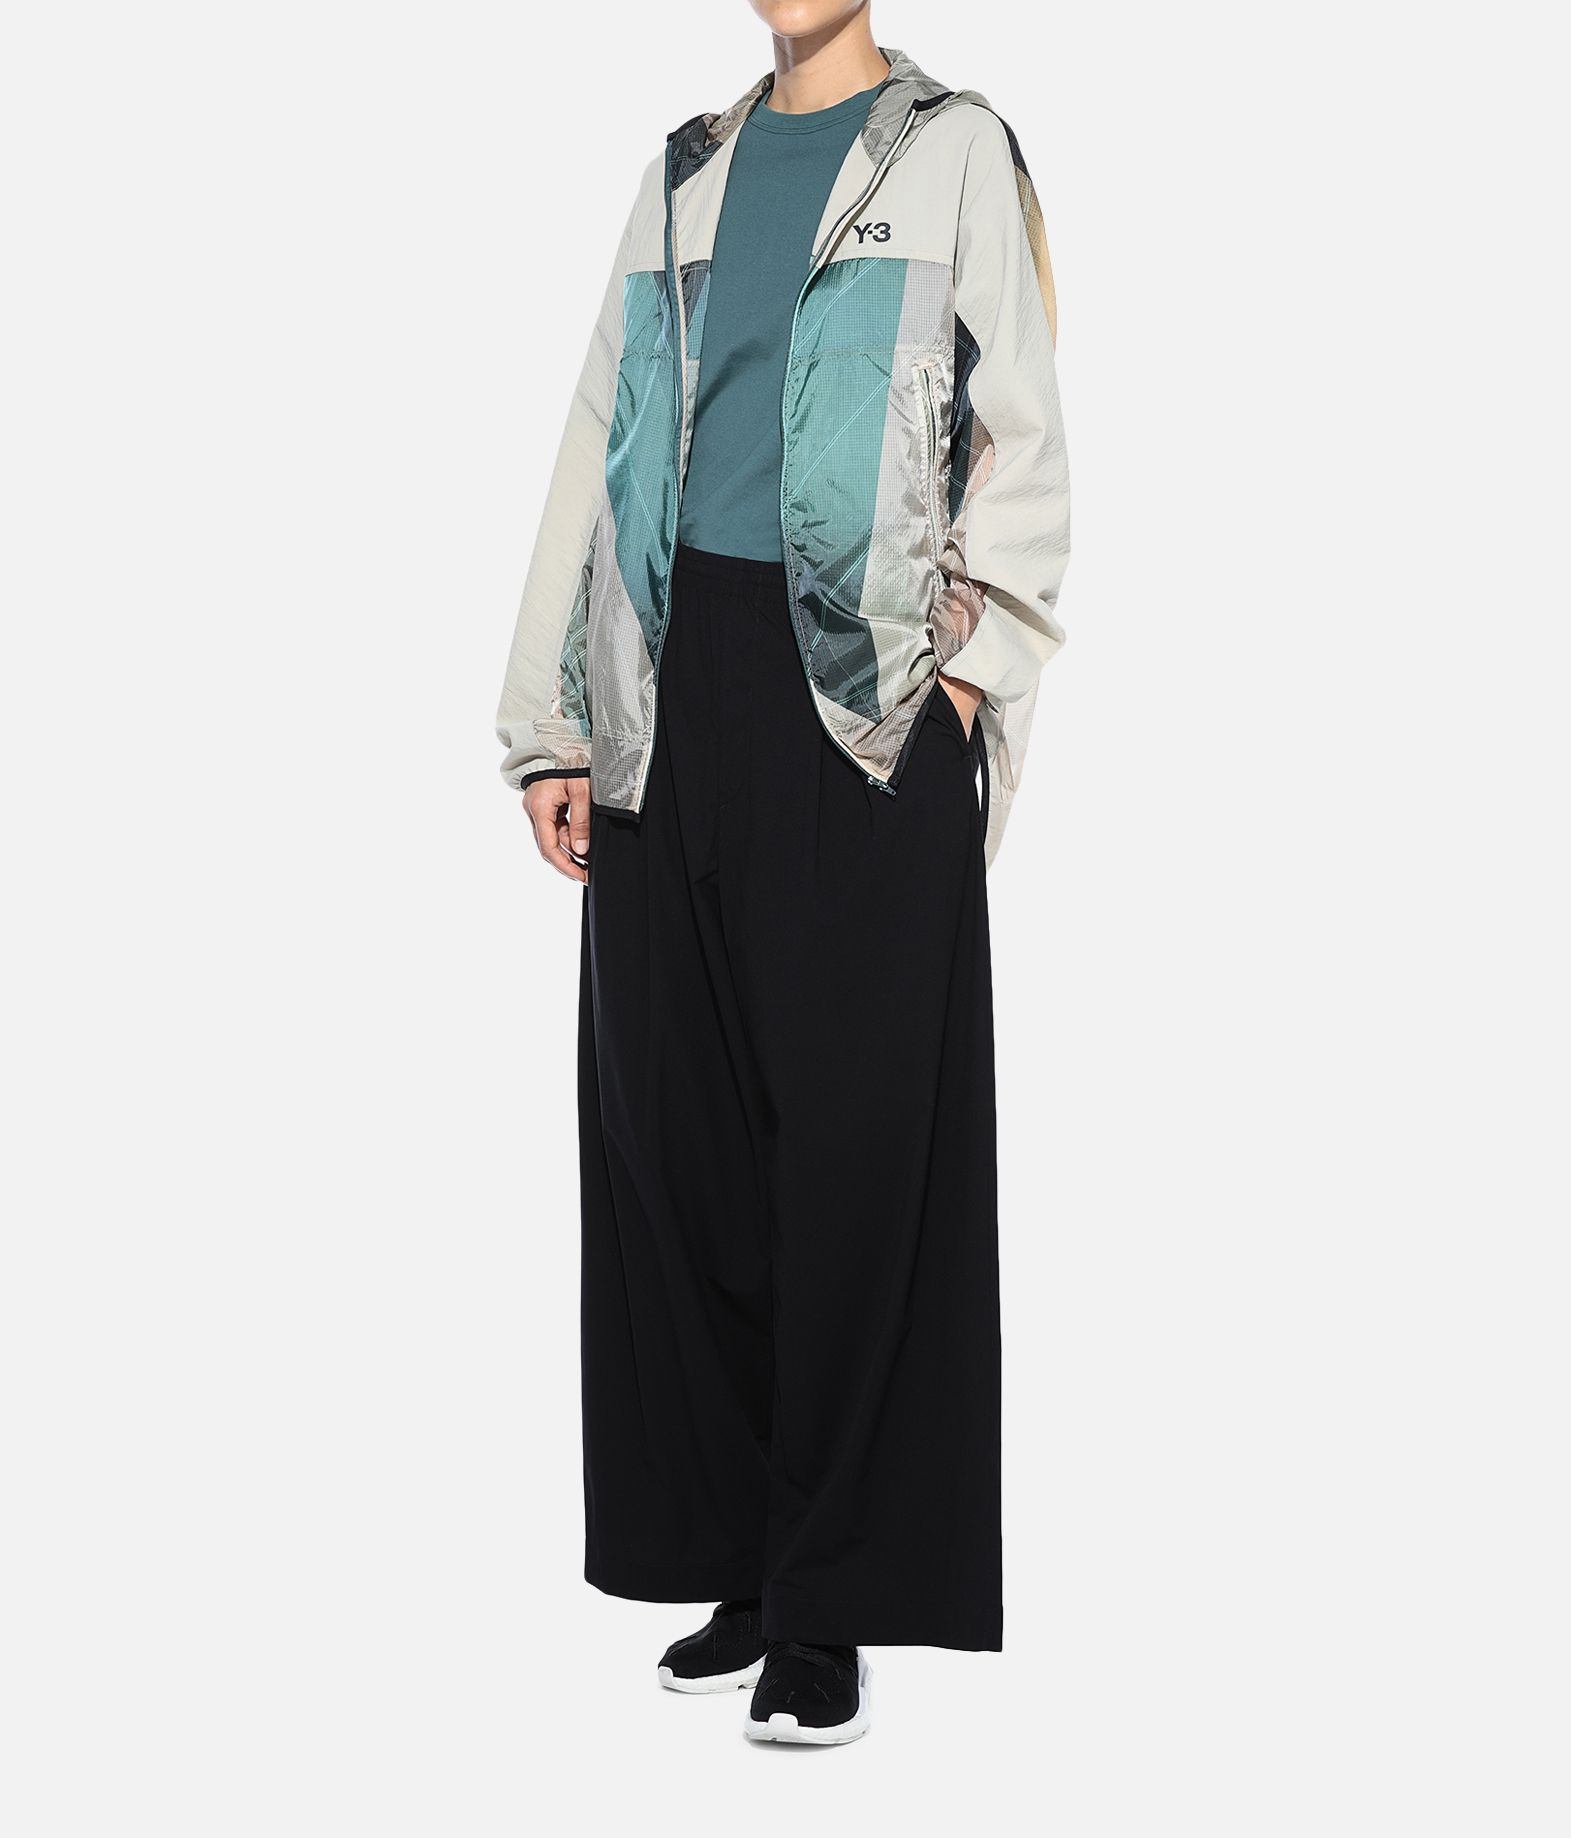 Y-3 Y-3 AOP Packable Jacket Jacket Woman a